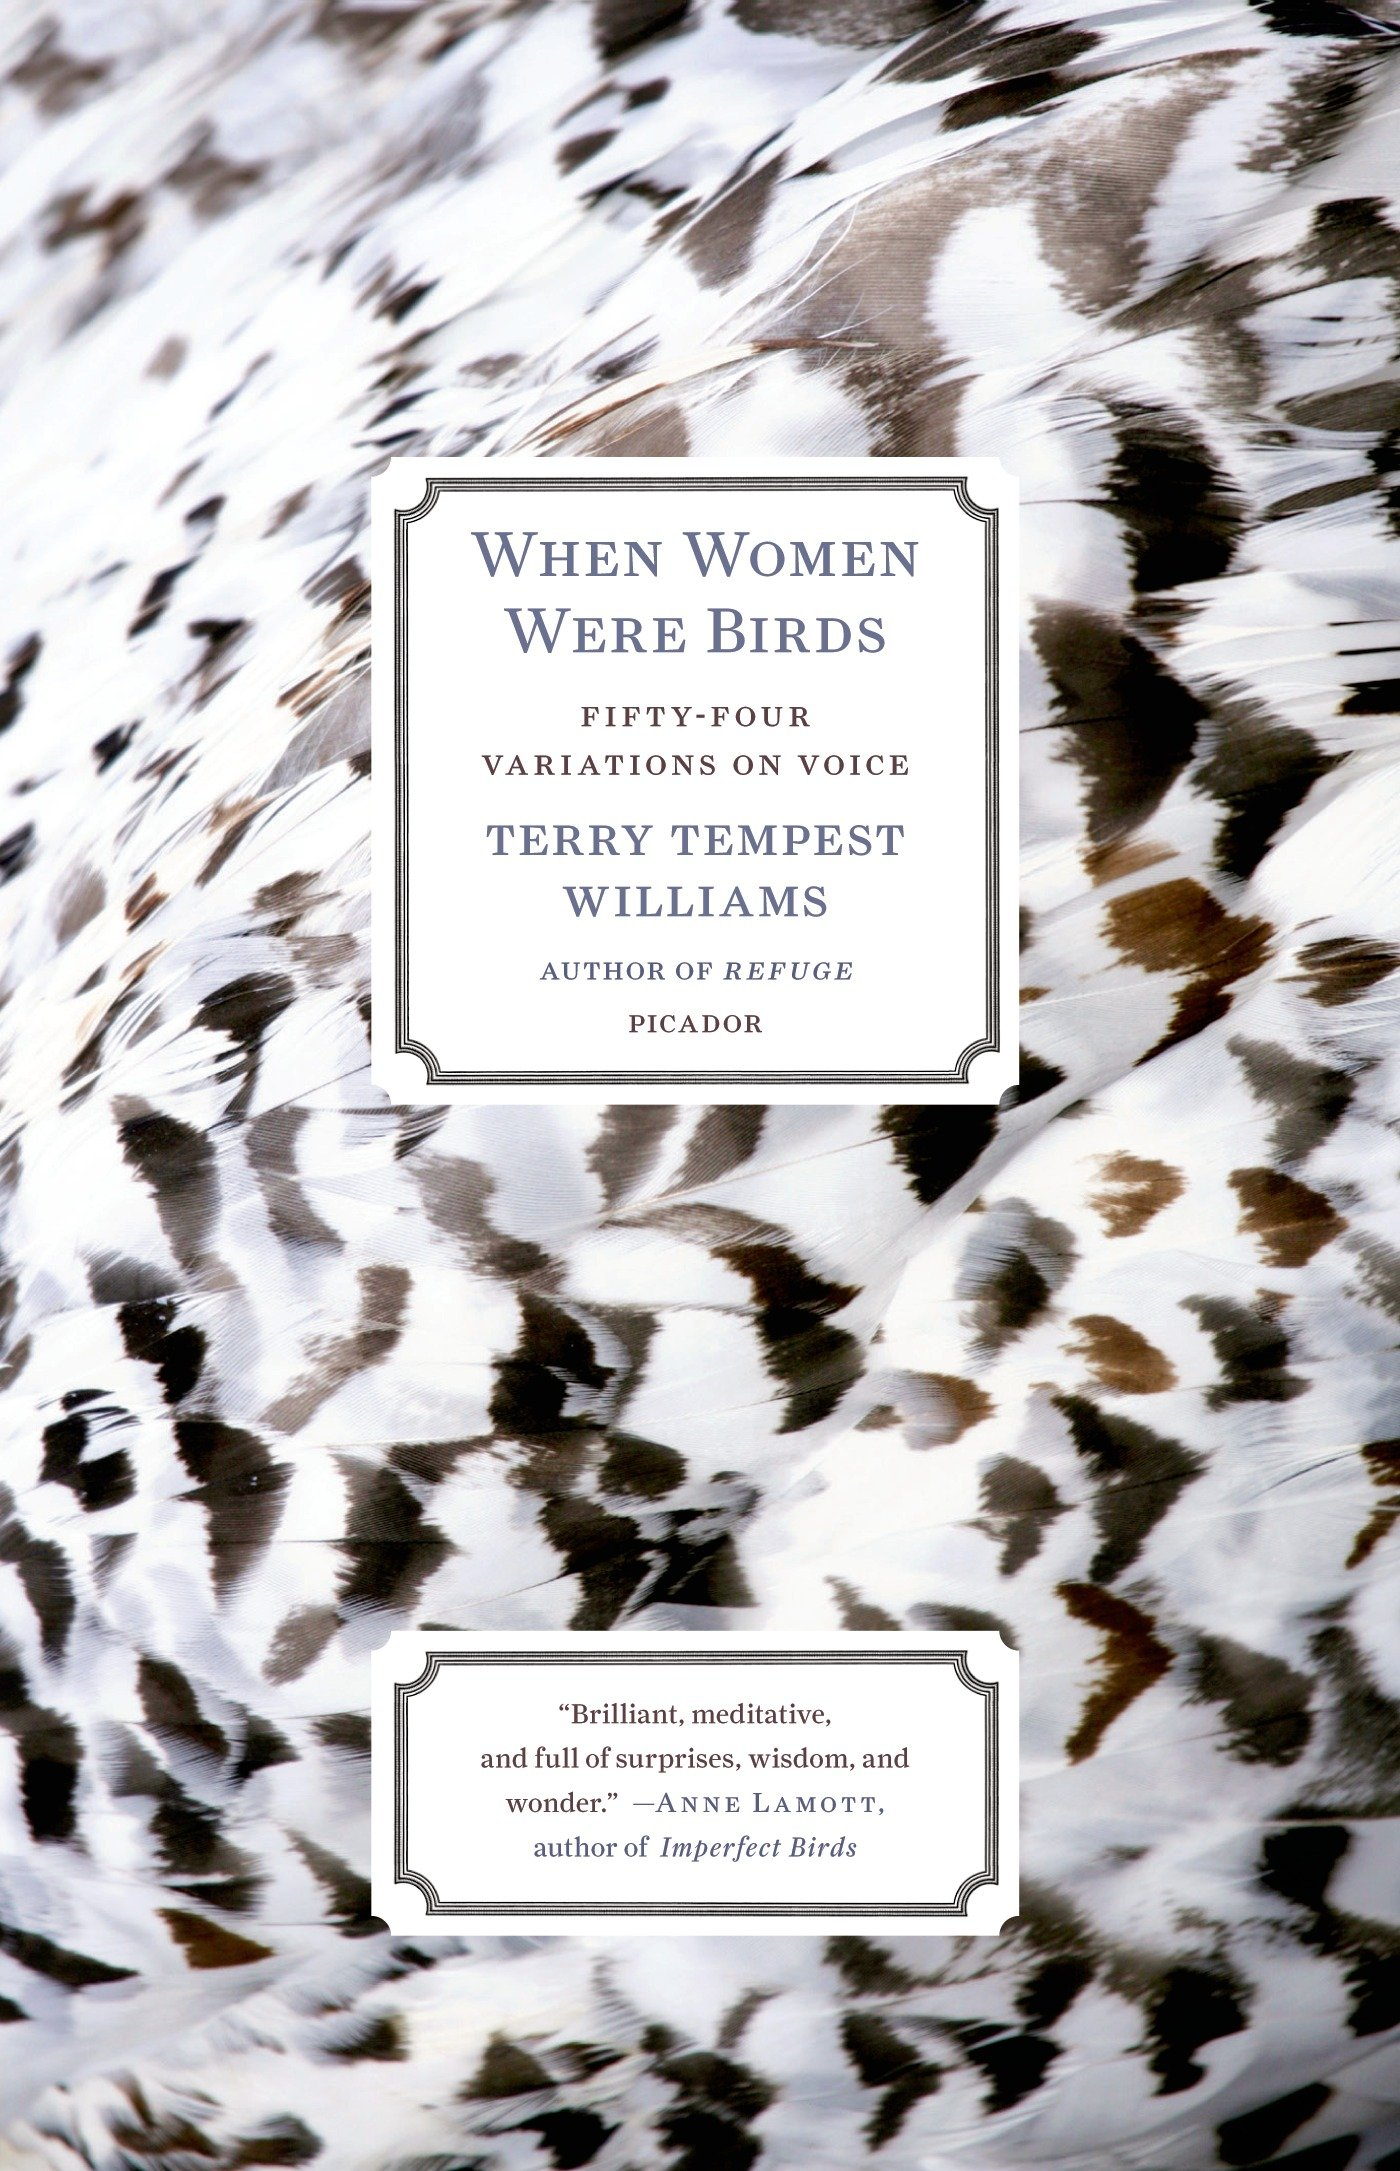 When Women Were Birds by Terry Tempest Williams